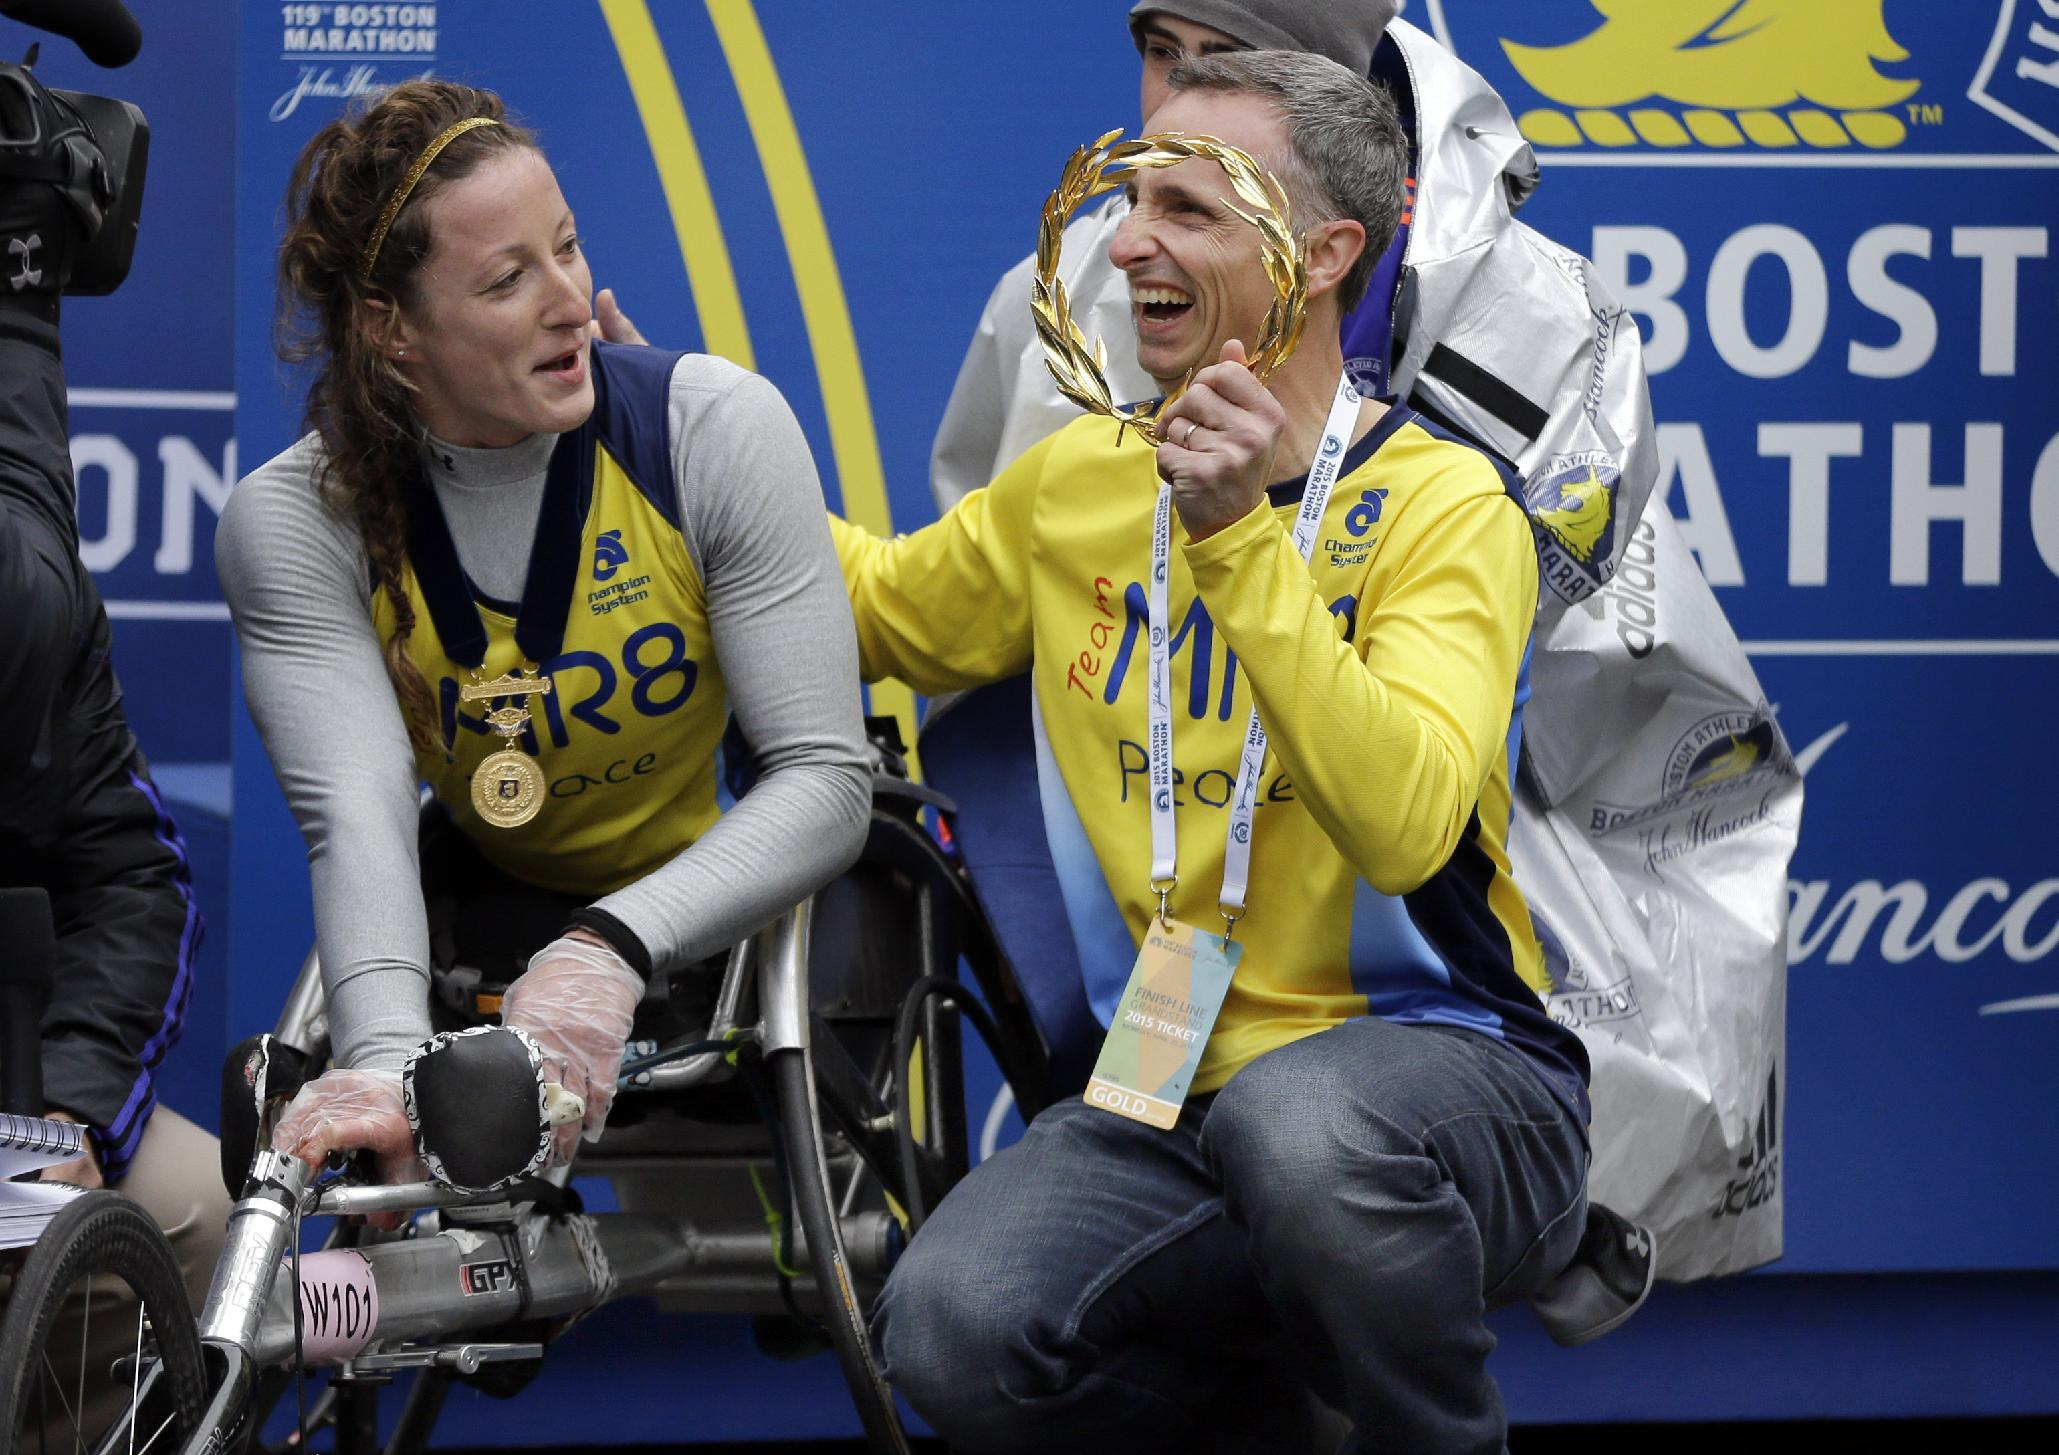 The Latest: Wheelchair champ gives wreath to Richards family